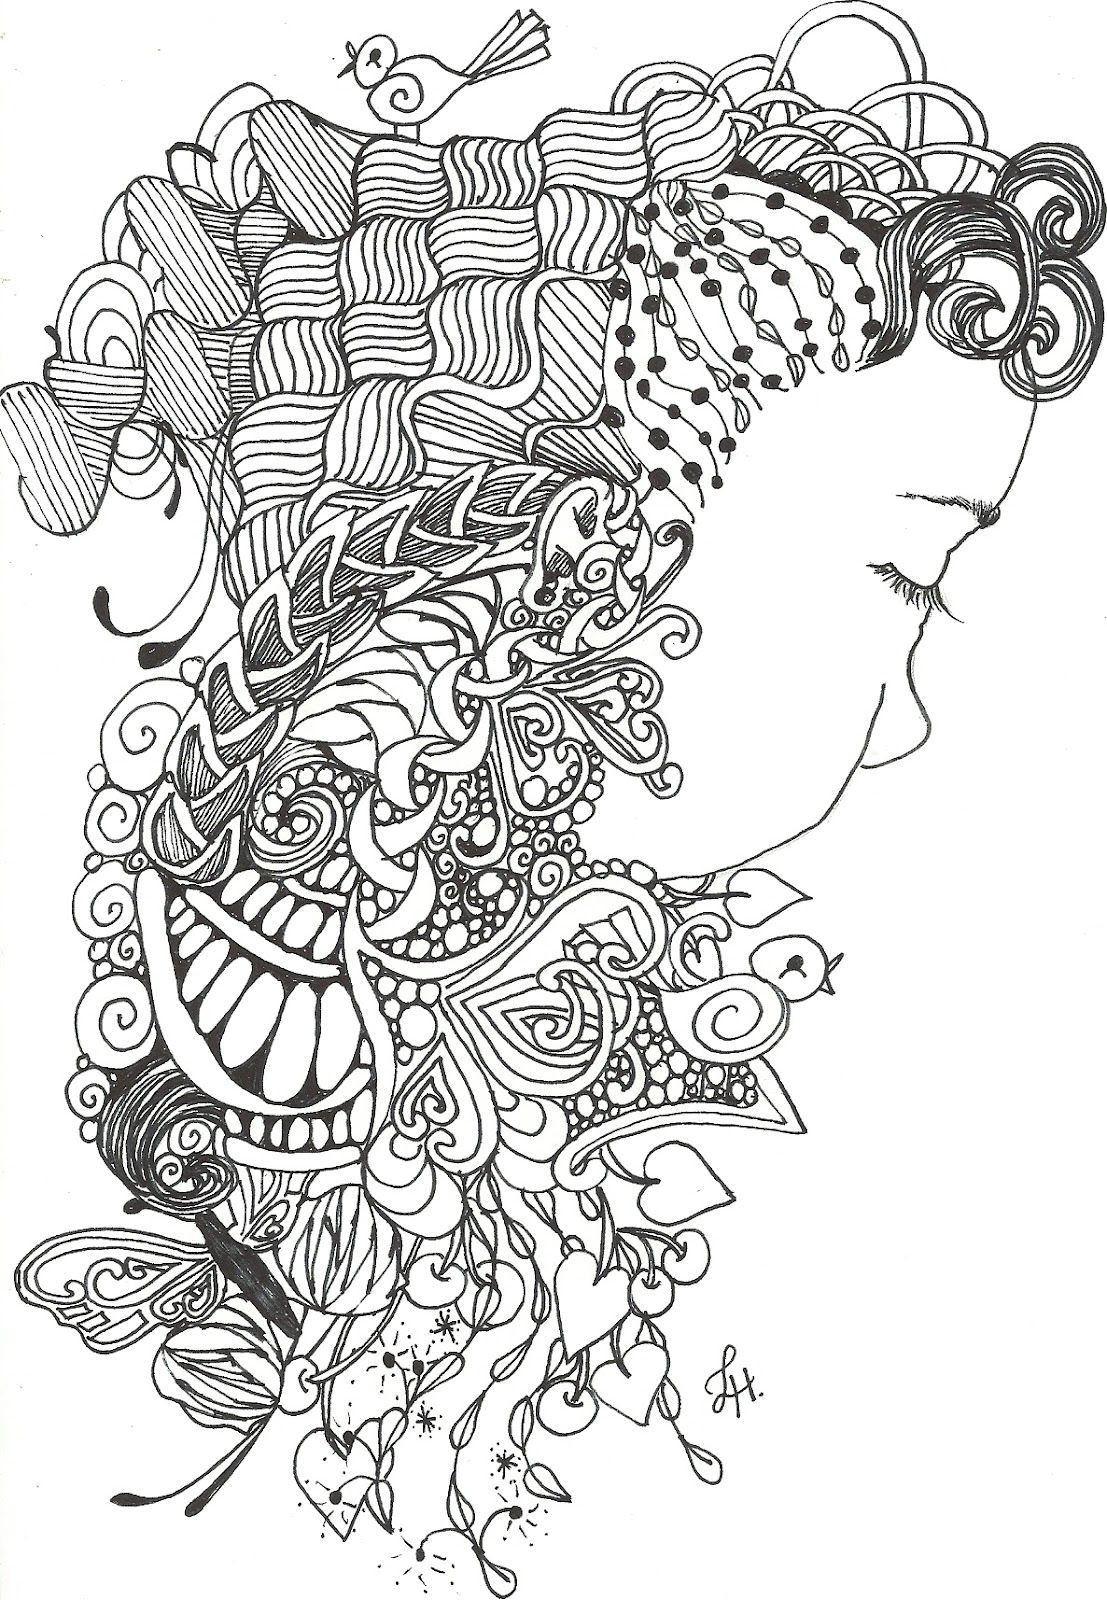 Another Zentangle Inspired Art And A Like Me Freebie